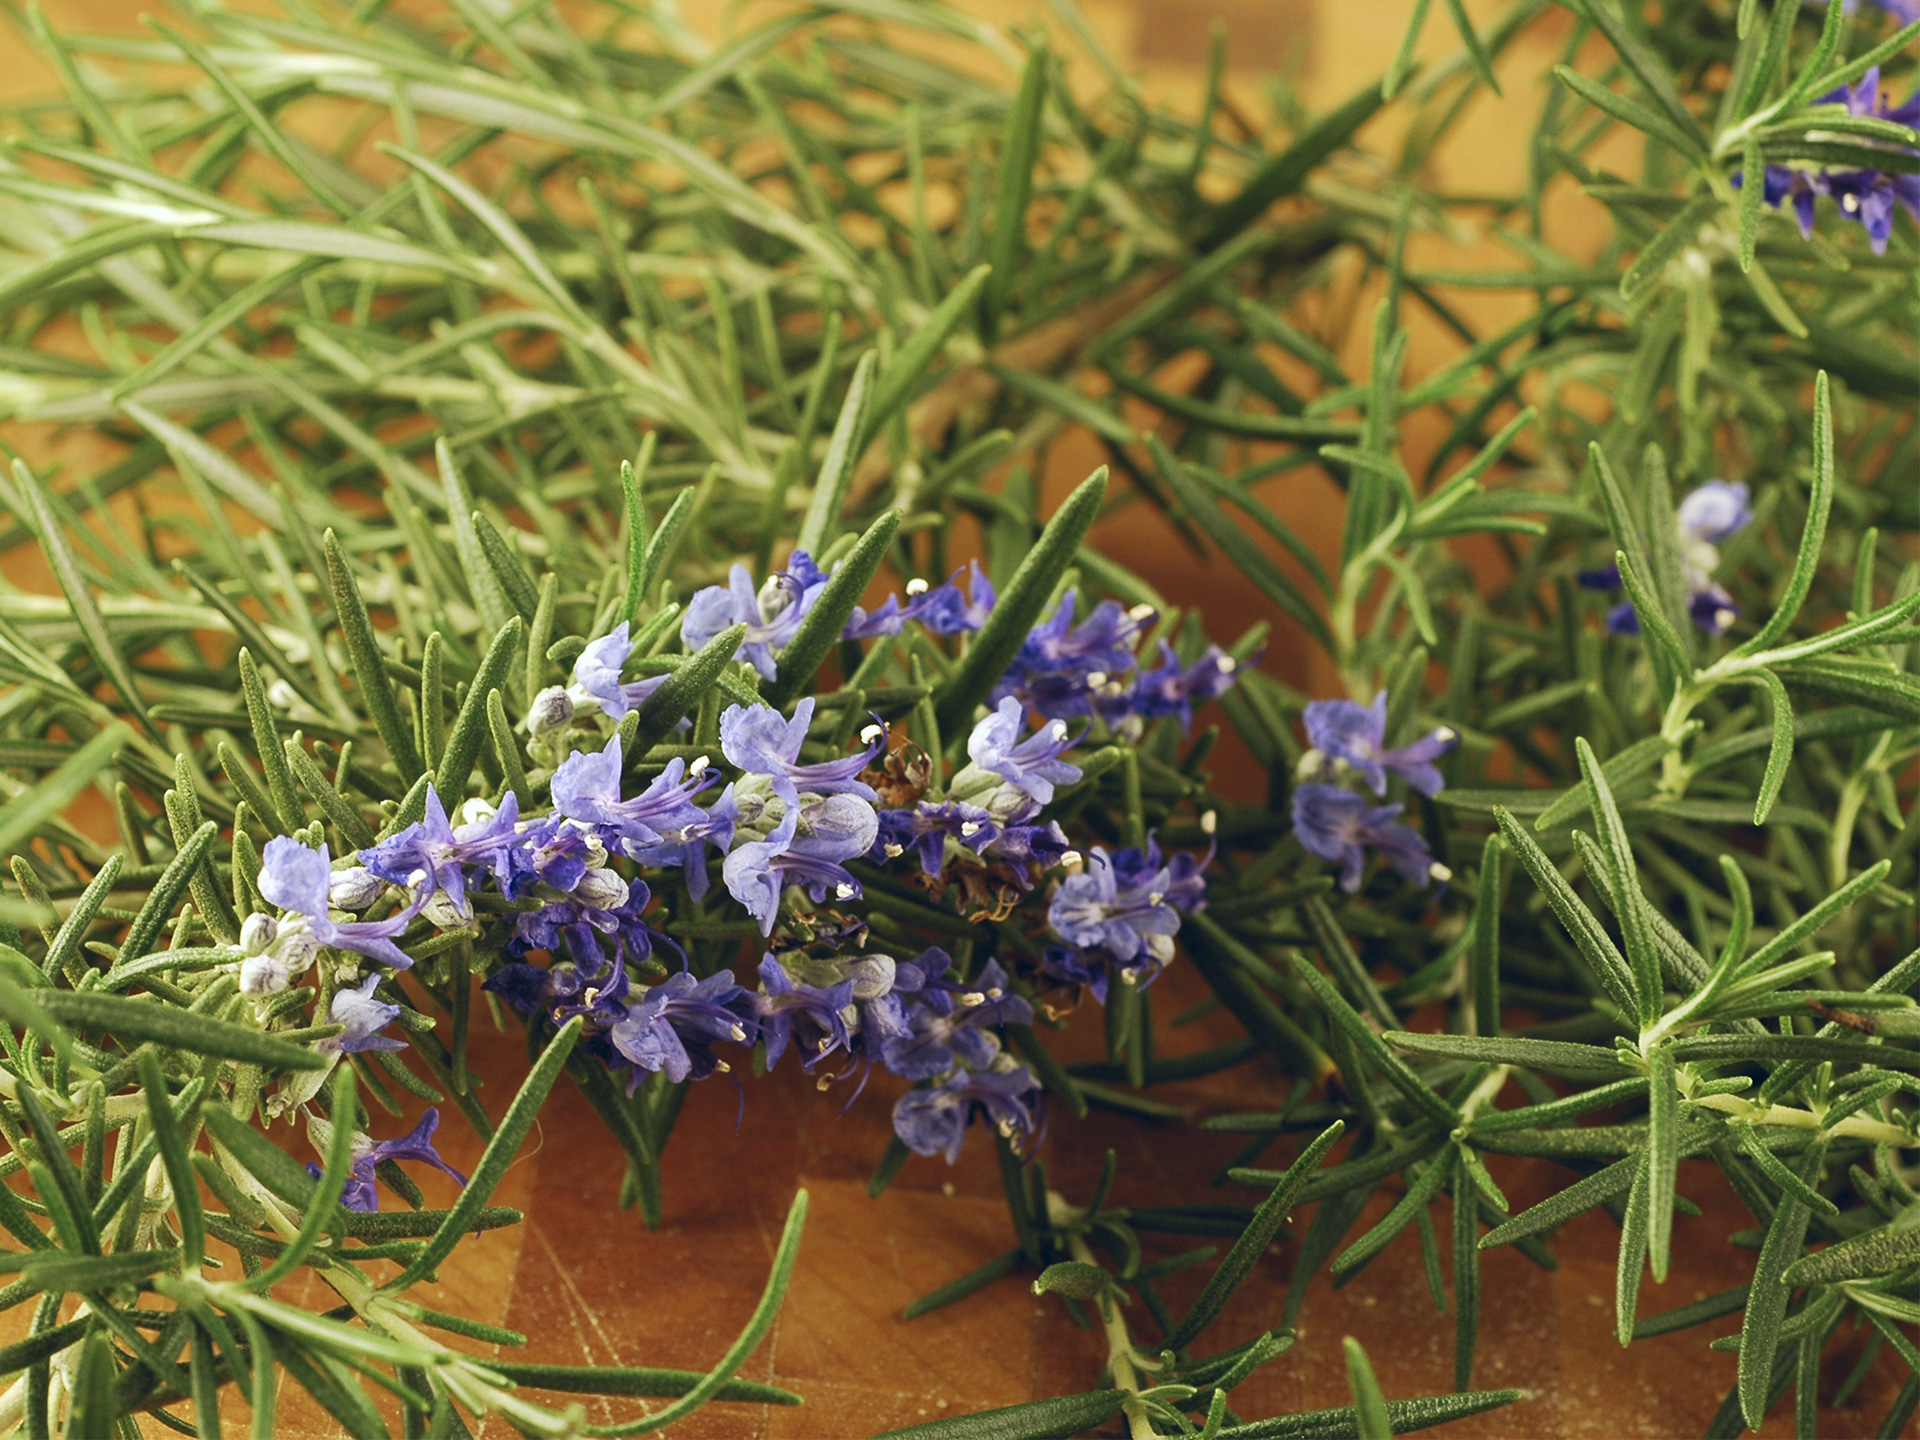 Rosemary Benefits